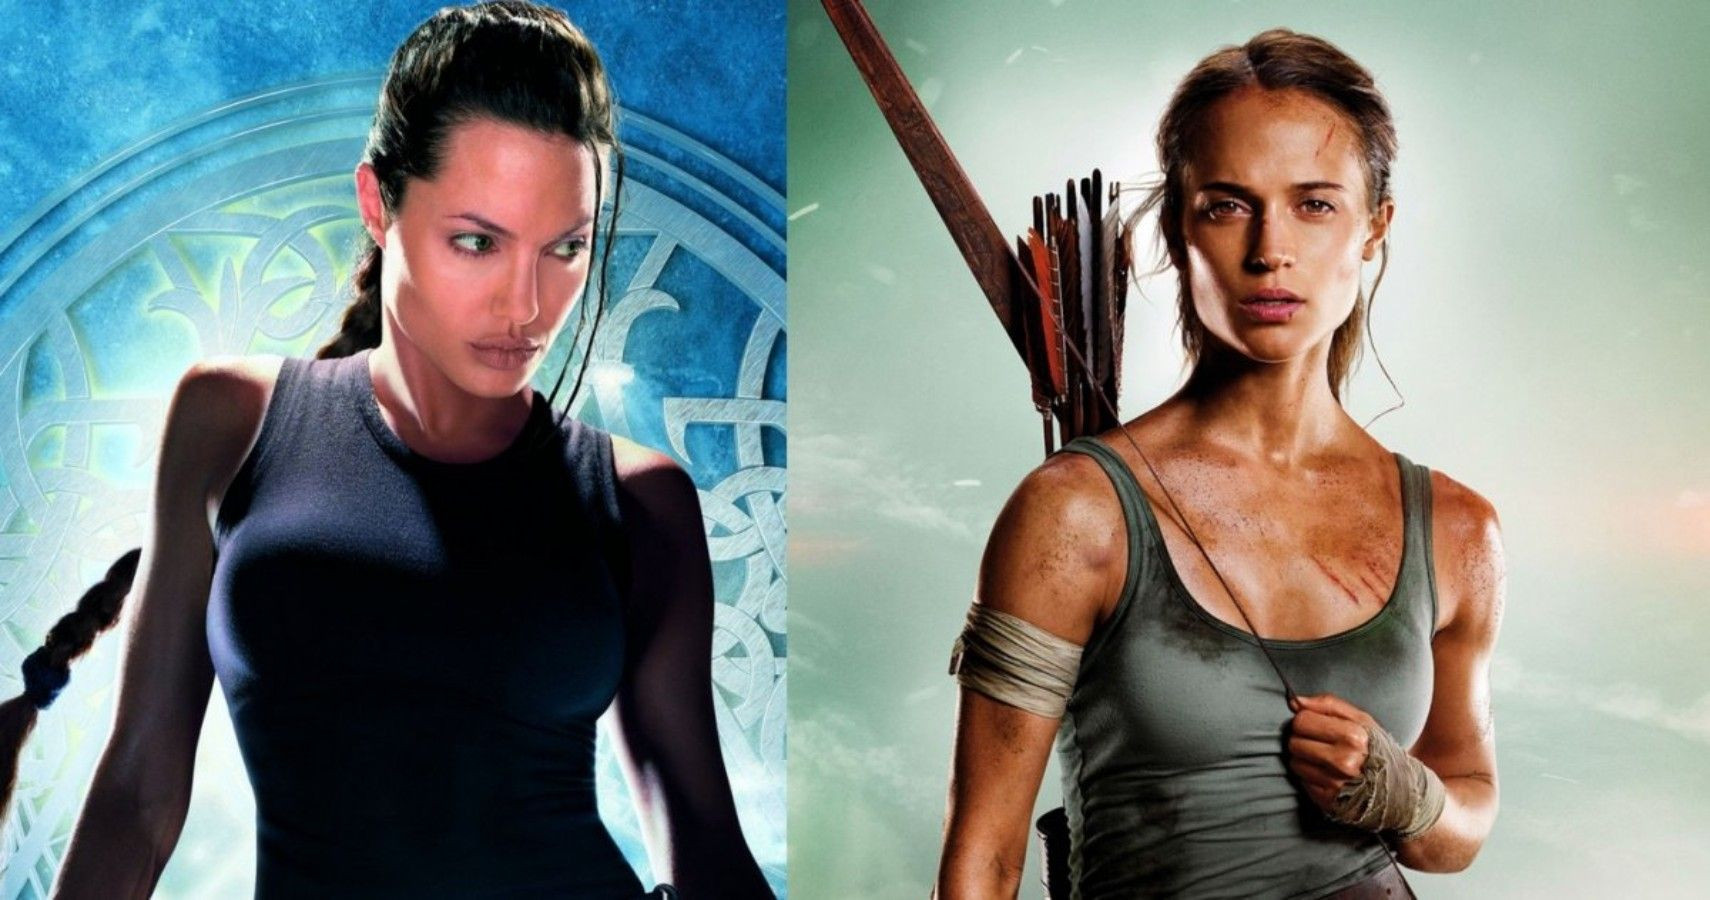 tomb raider movie 2001 cast